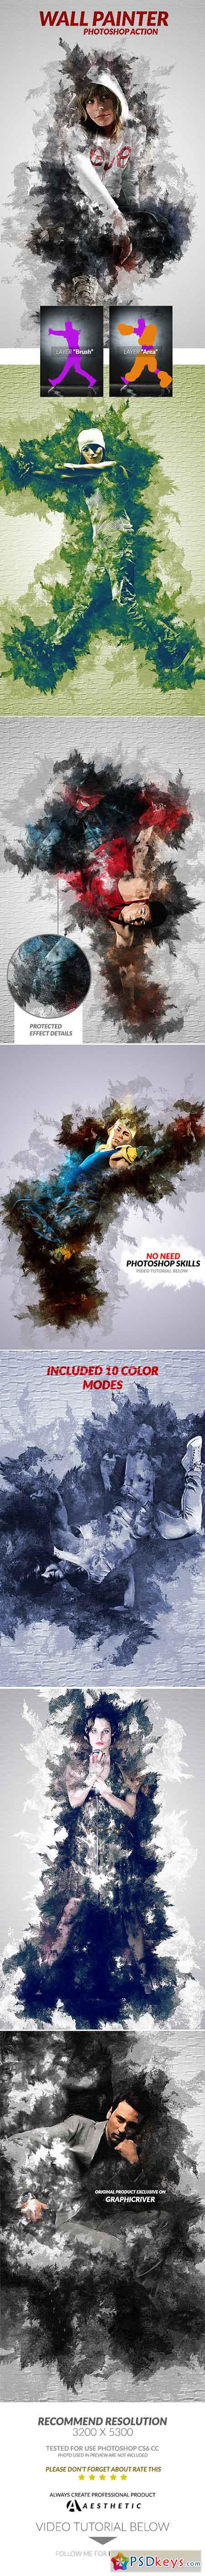 Wall Painter Photoshop Action 16410767